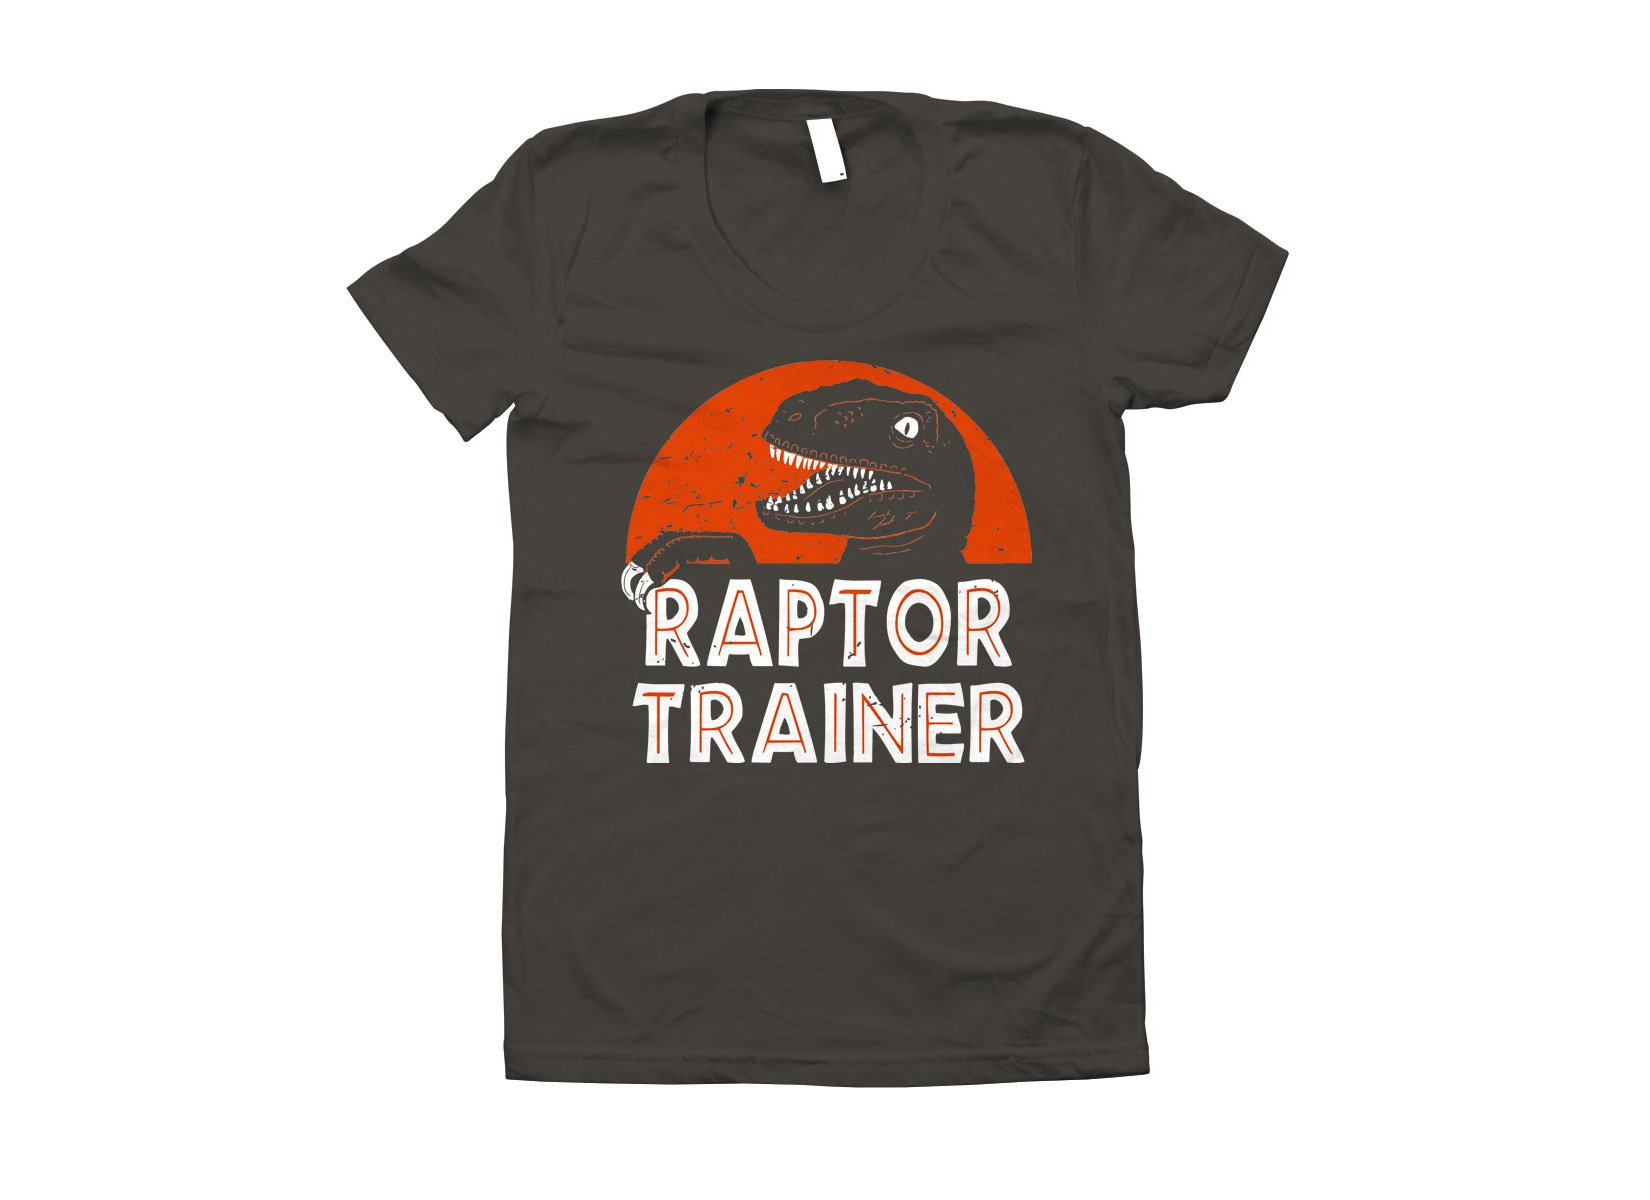 Raptor Trainer on Juniors T-Shirt